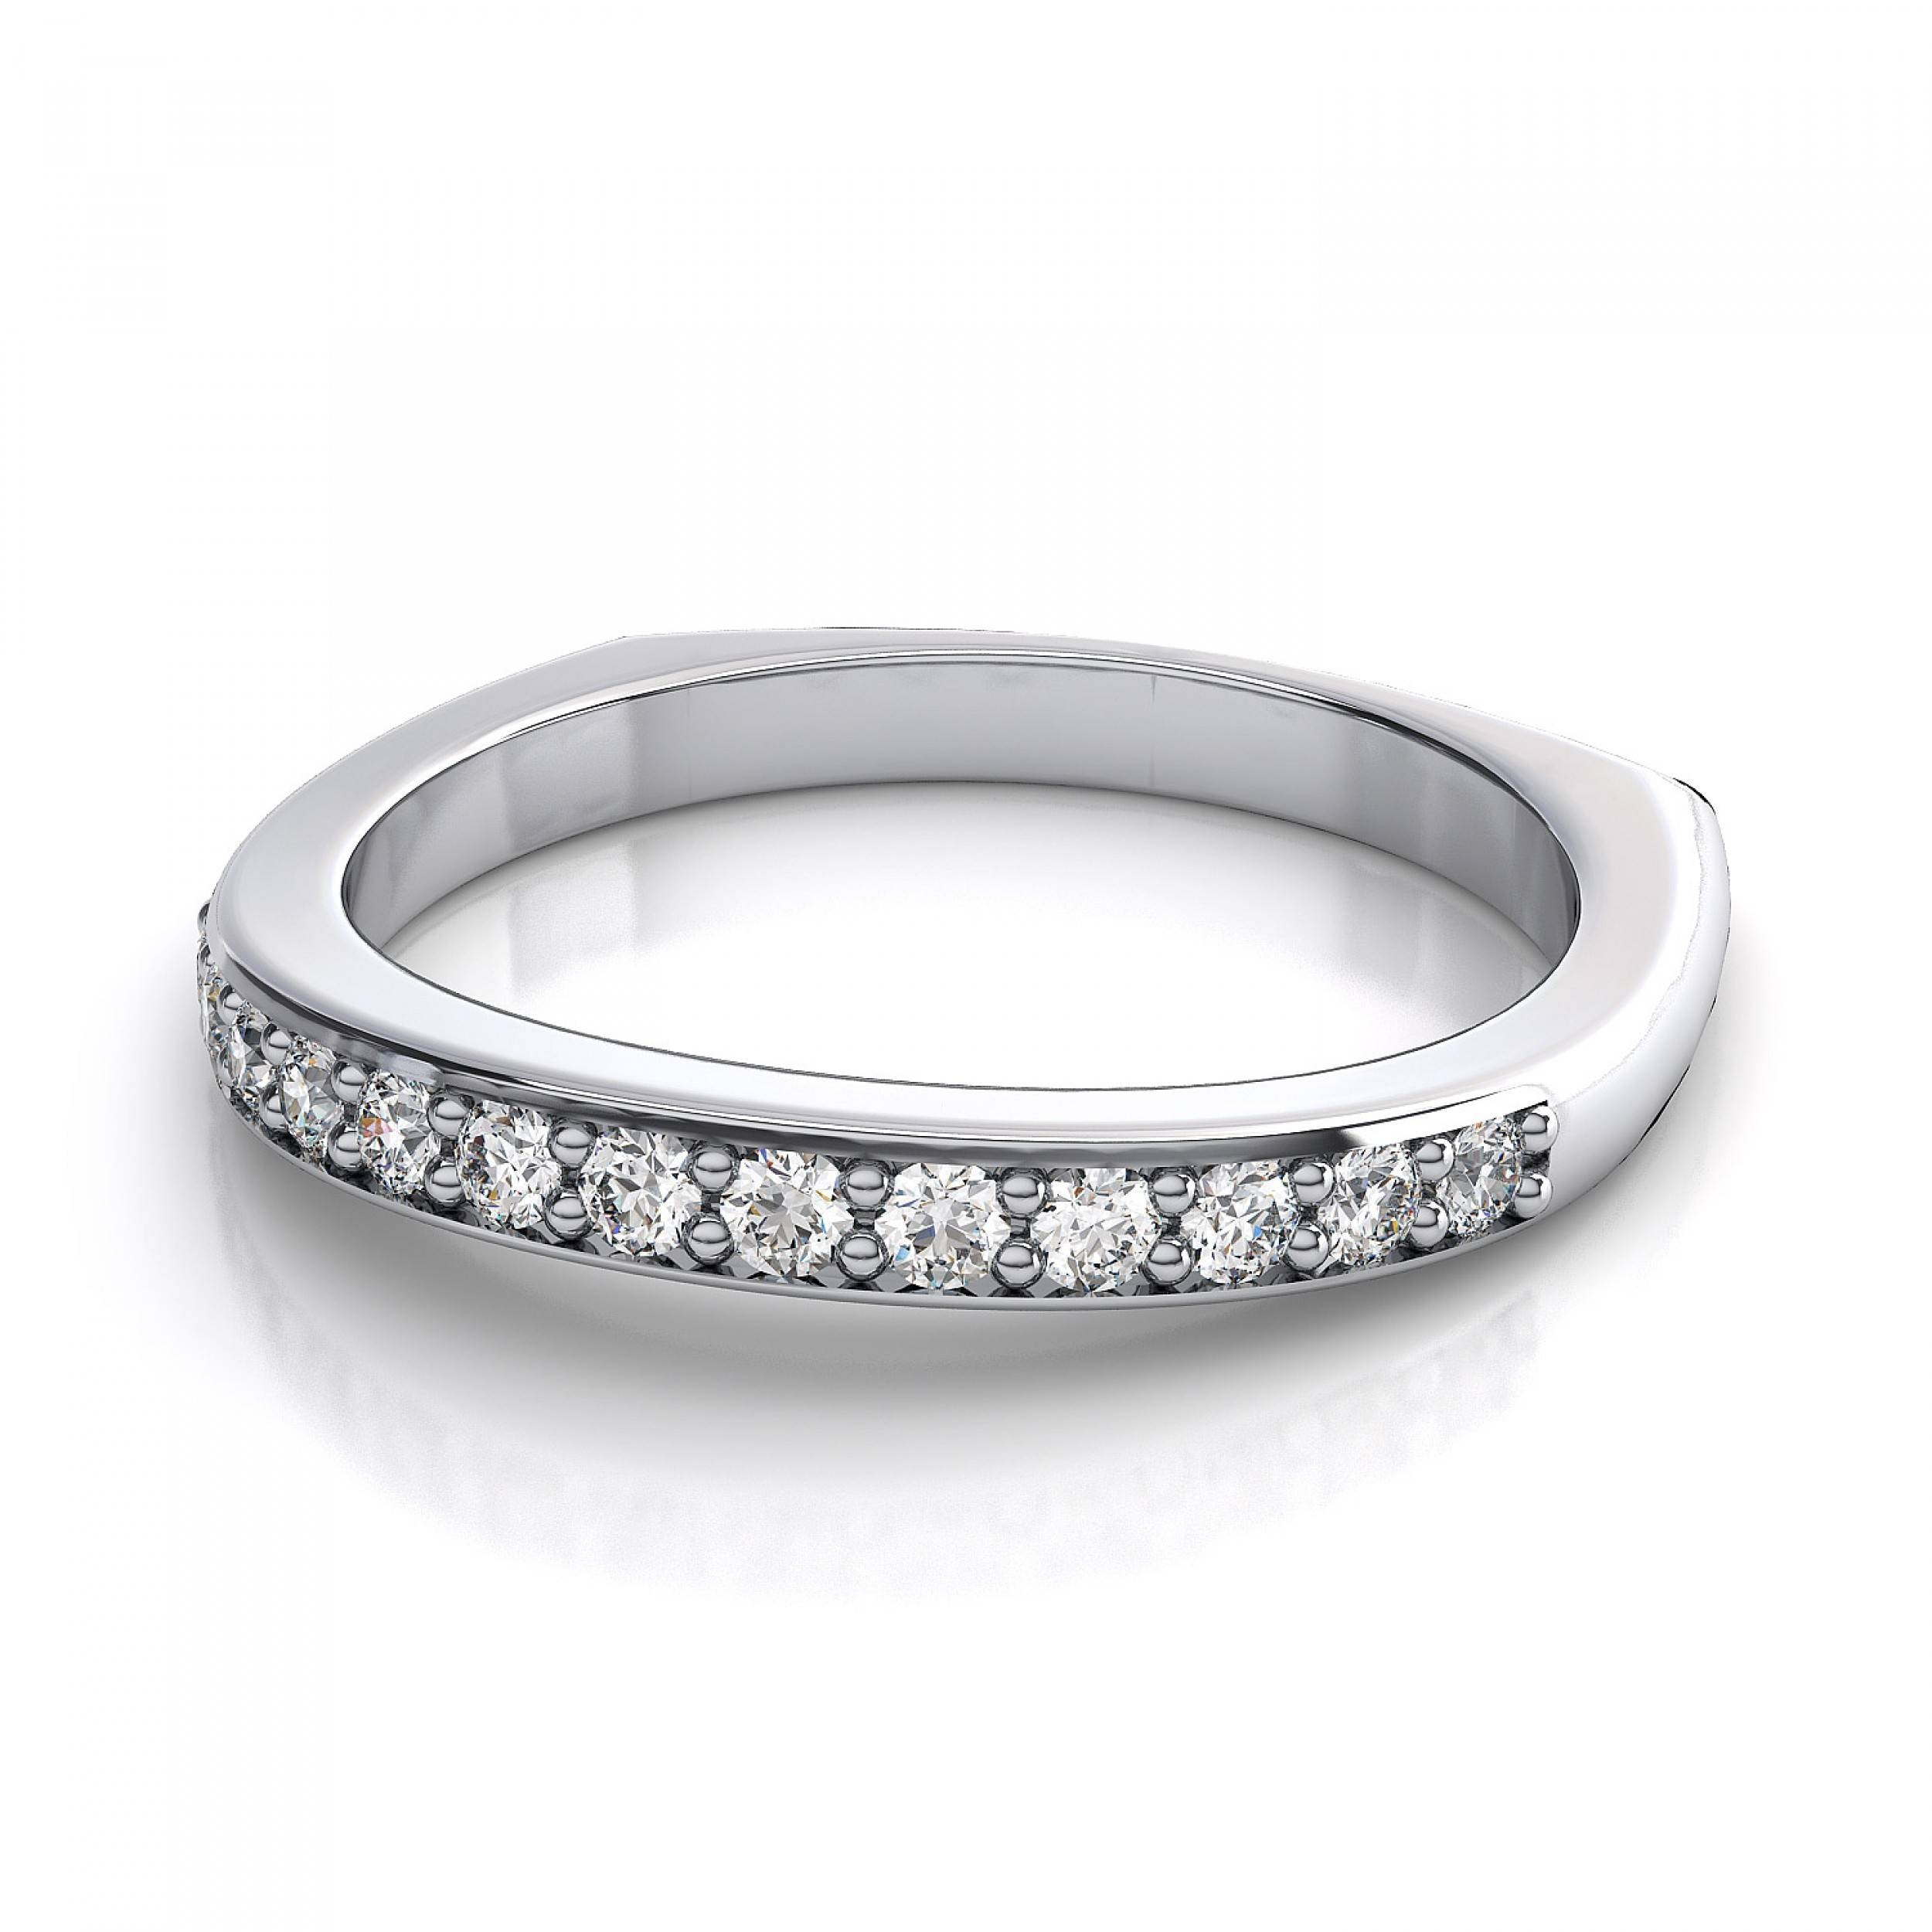 2018 Latest Thick White Gold Wedding Bands